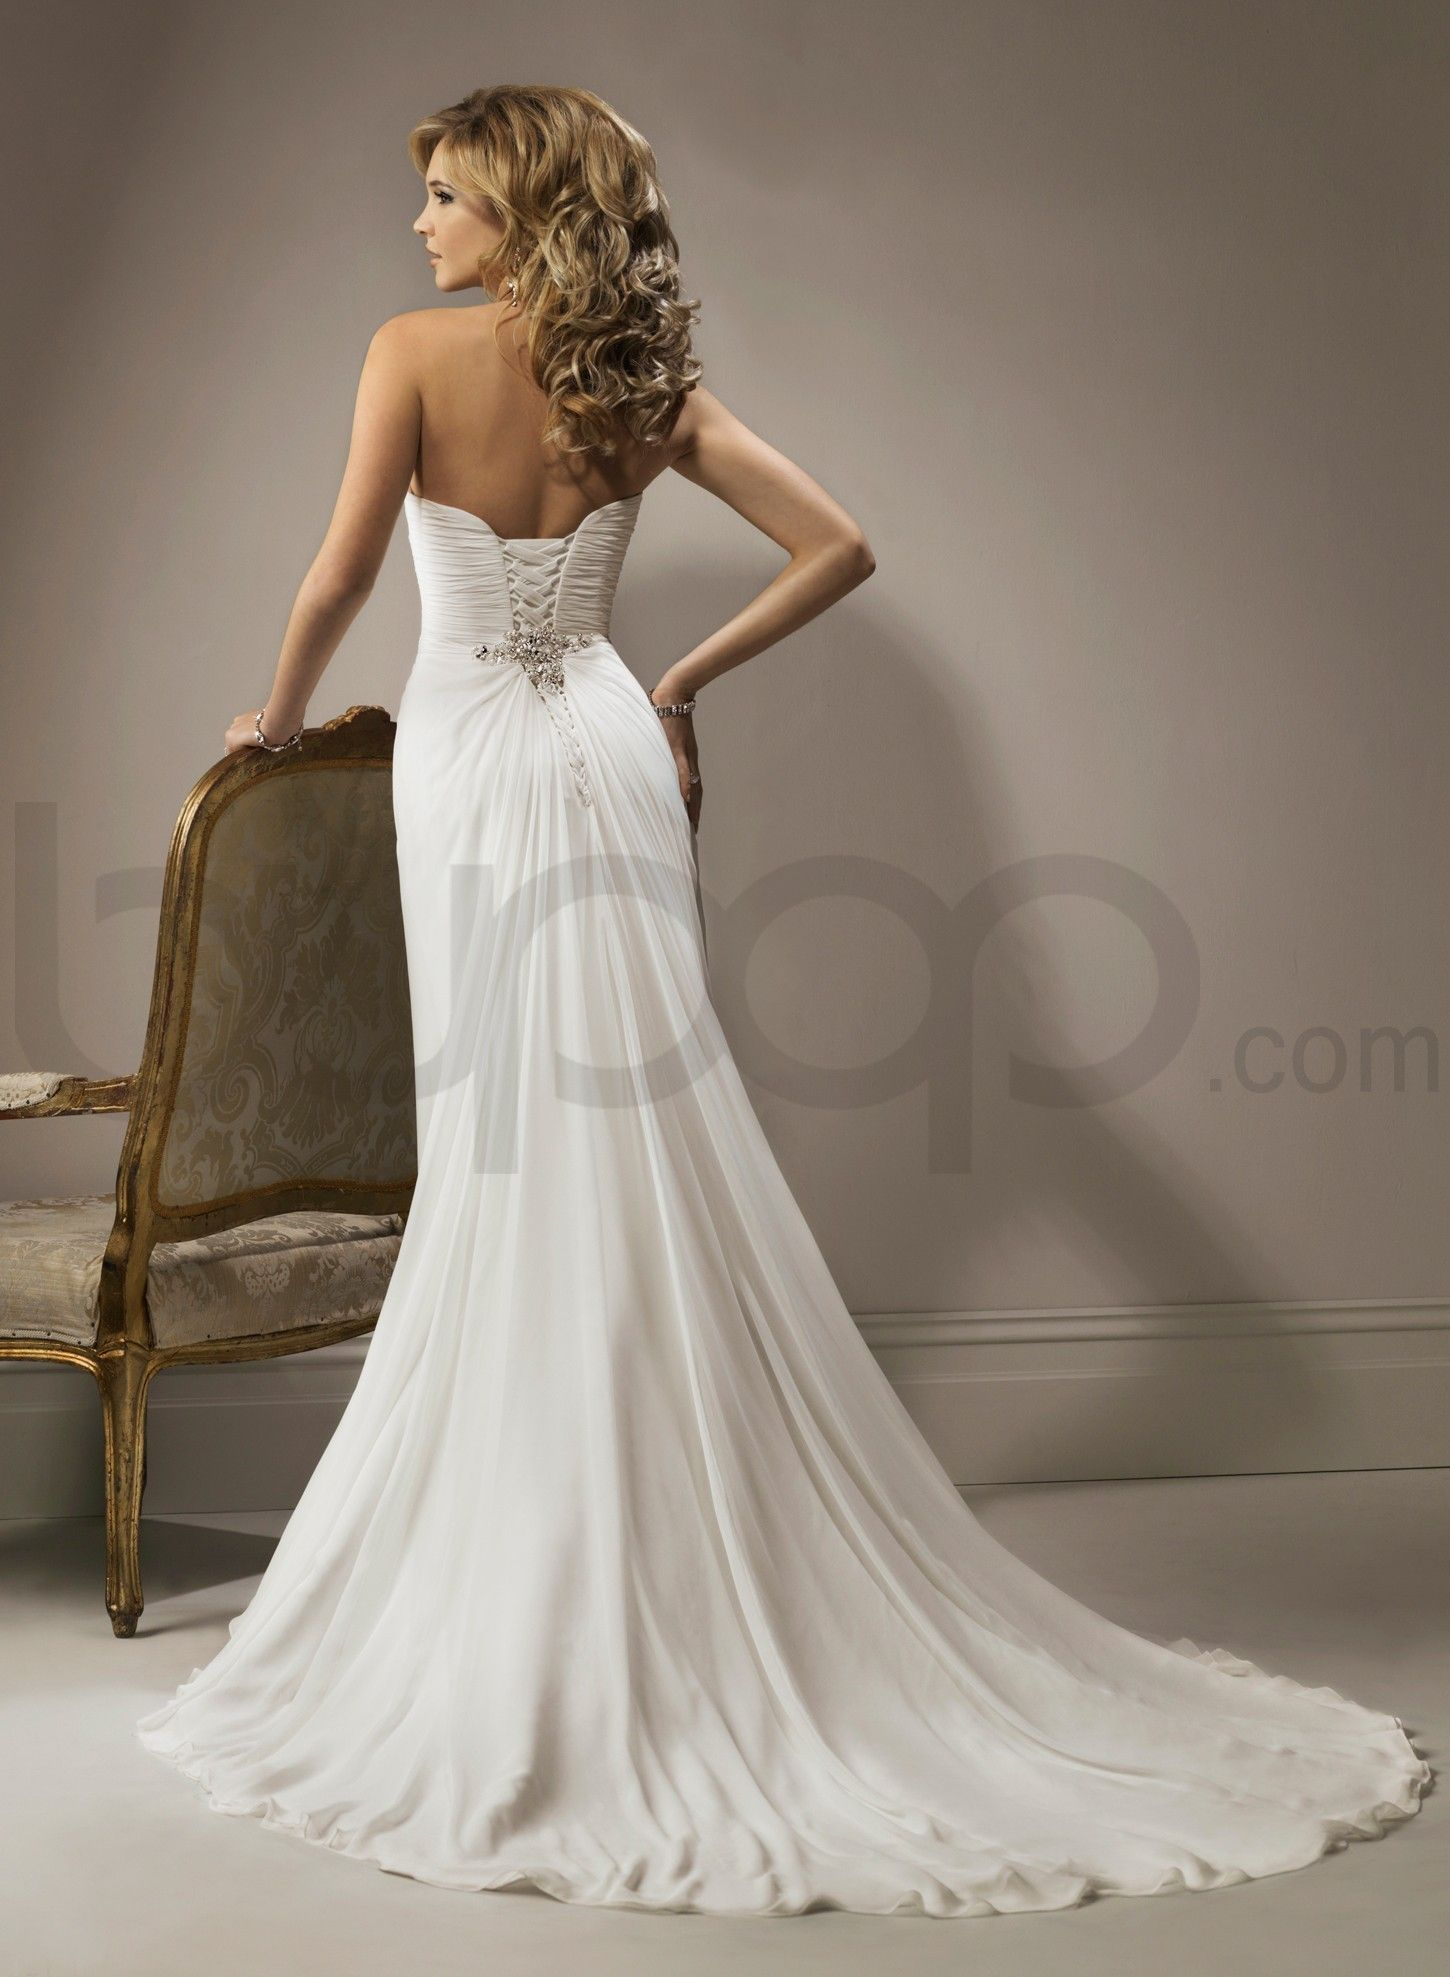 Sweetheart Neckline Fit And Flare Wedding Dress Canada